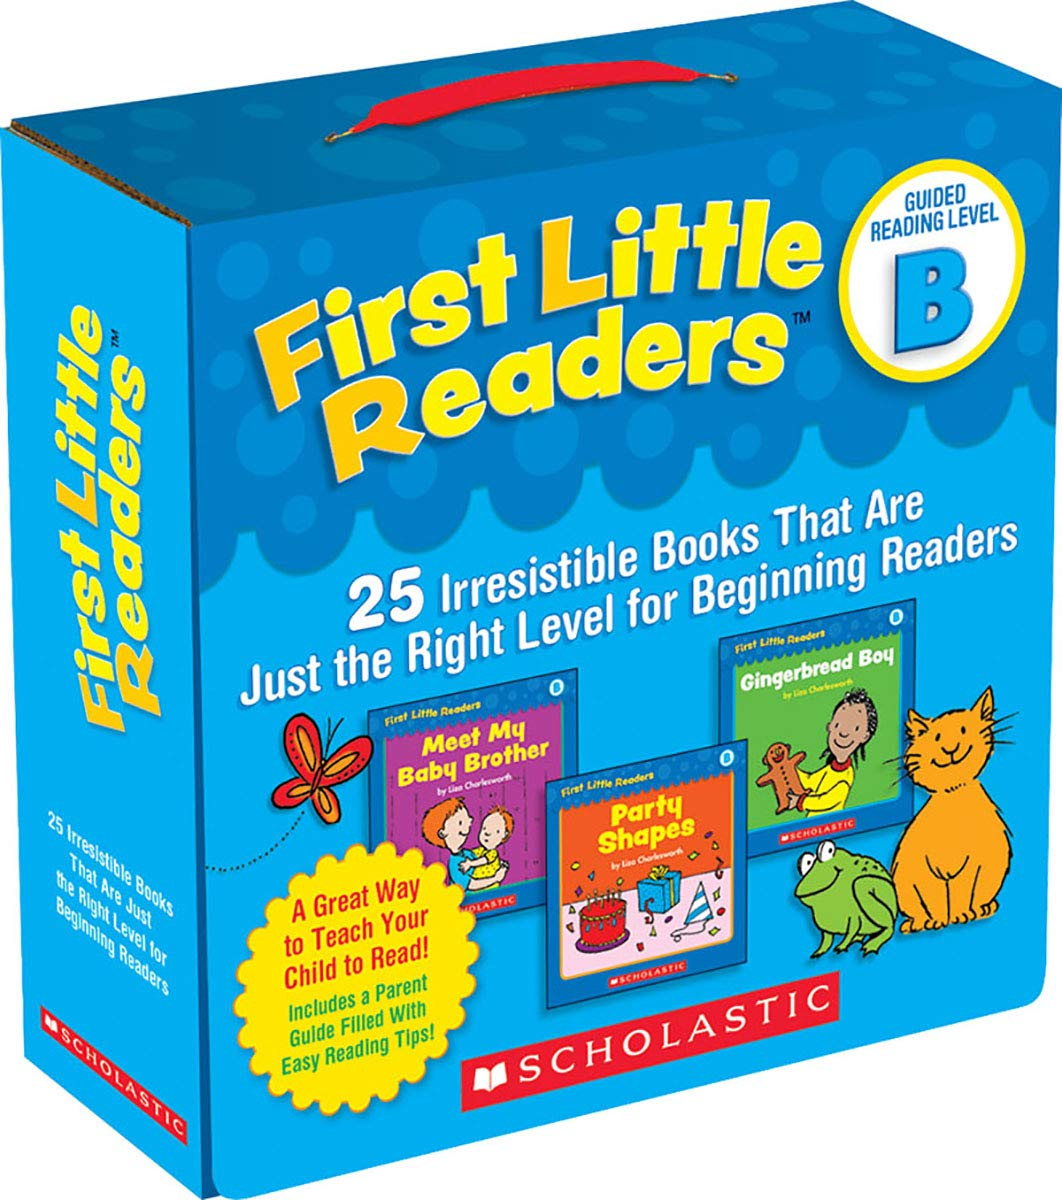 First Little Readers: Guided Reading Level B: 25 Irresistible Books That  Are Just the Right Level for Beginning Readers Guided Reading Pack:  Amazon.co.uk: Liza Charlesworth: Books